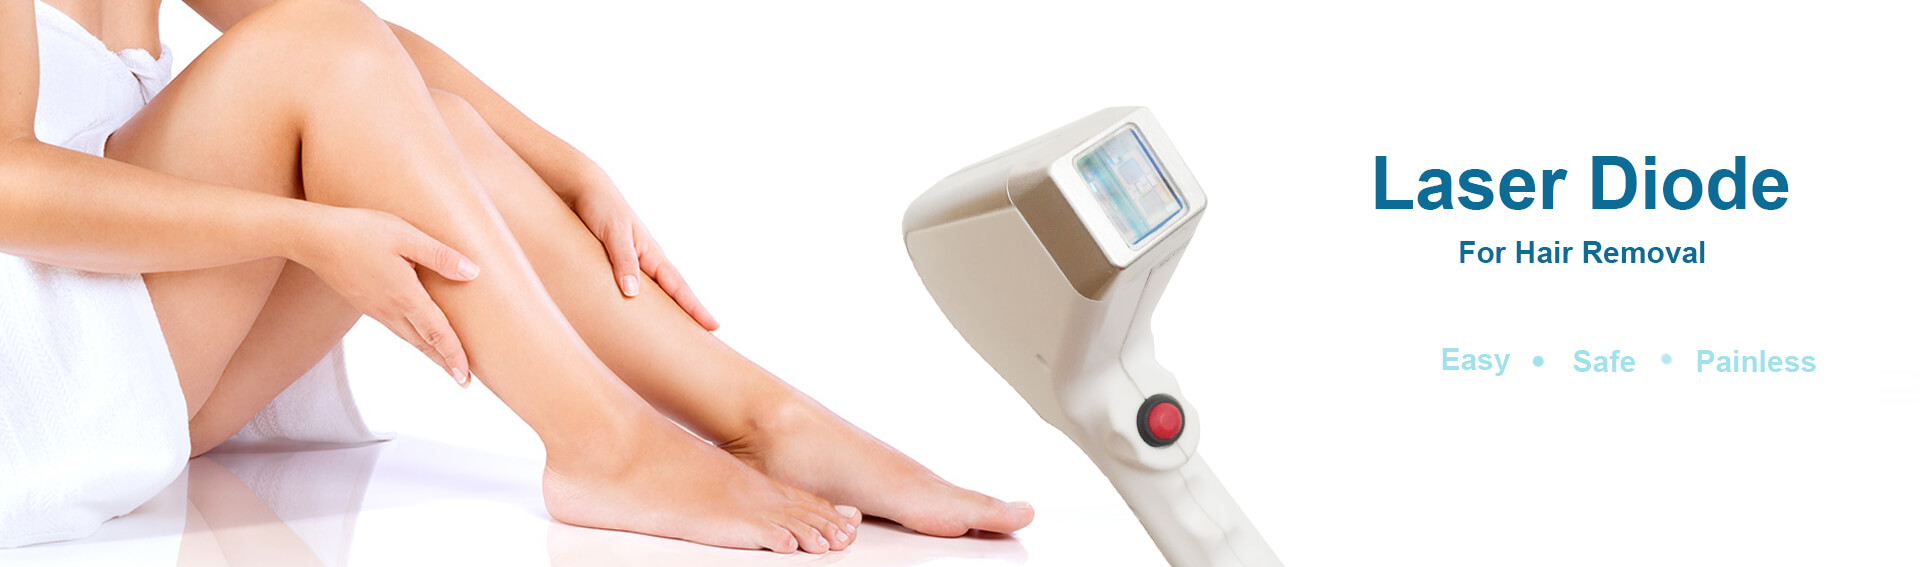 Professional Diode Laser Hair Removal